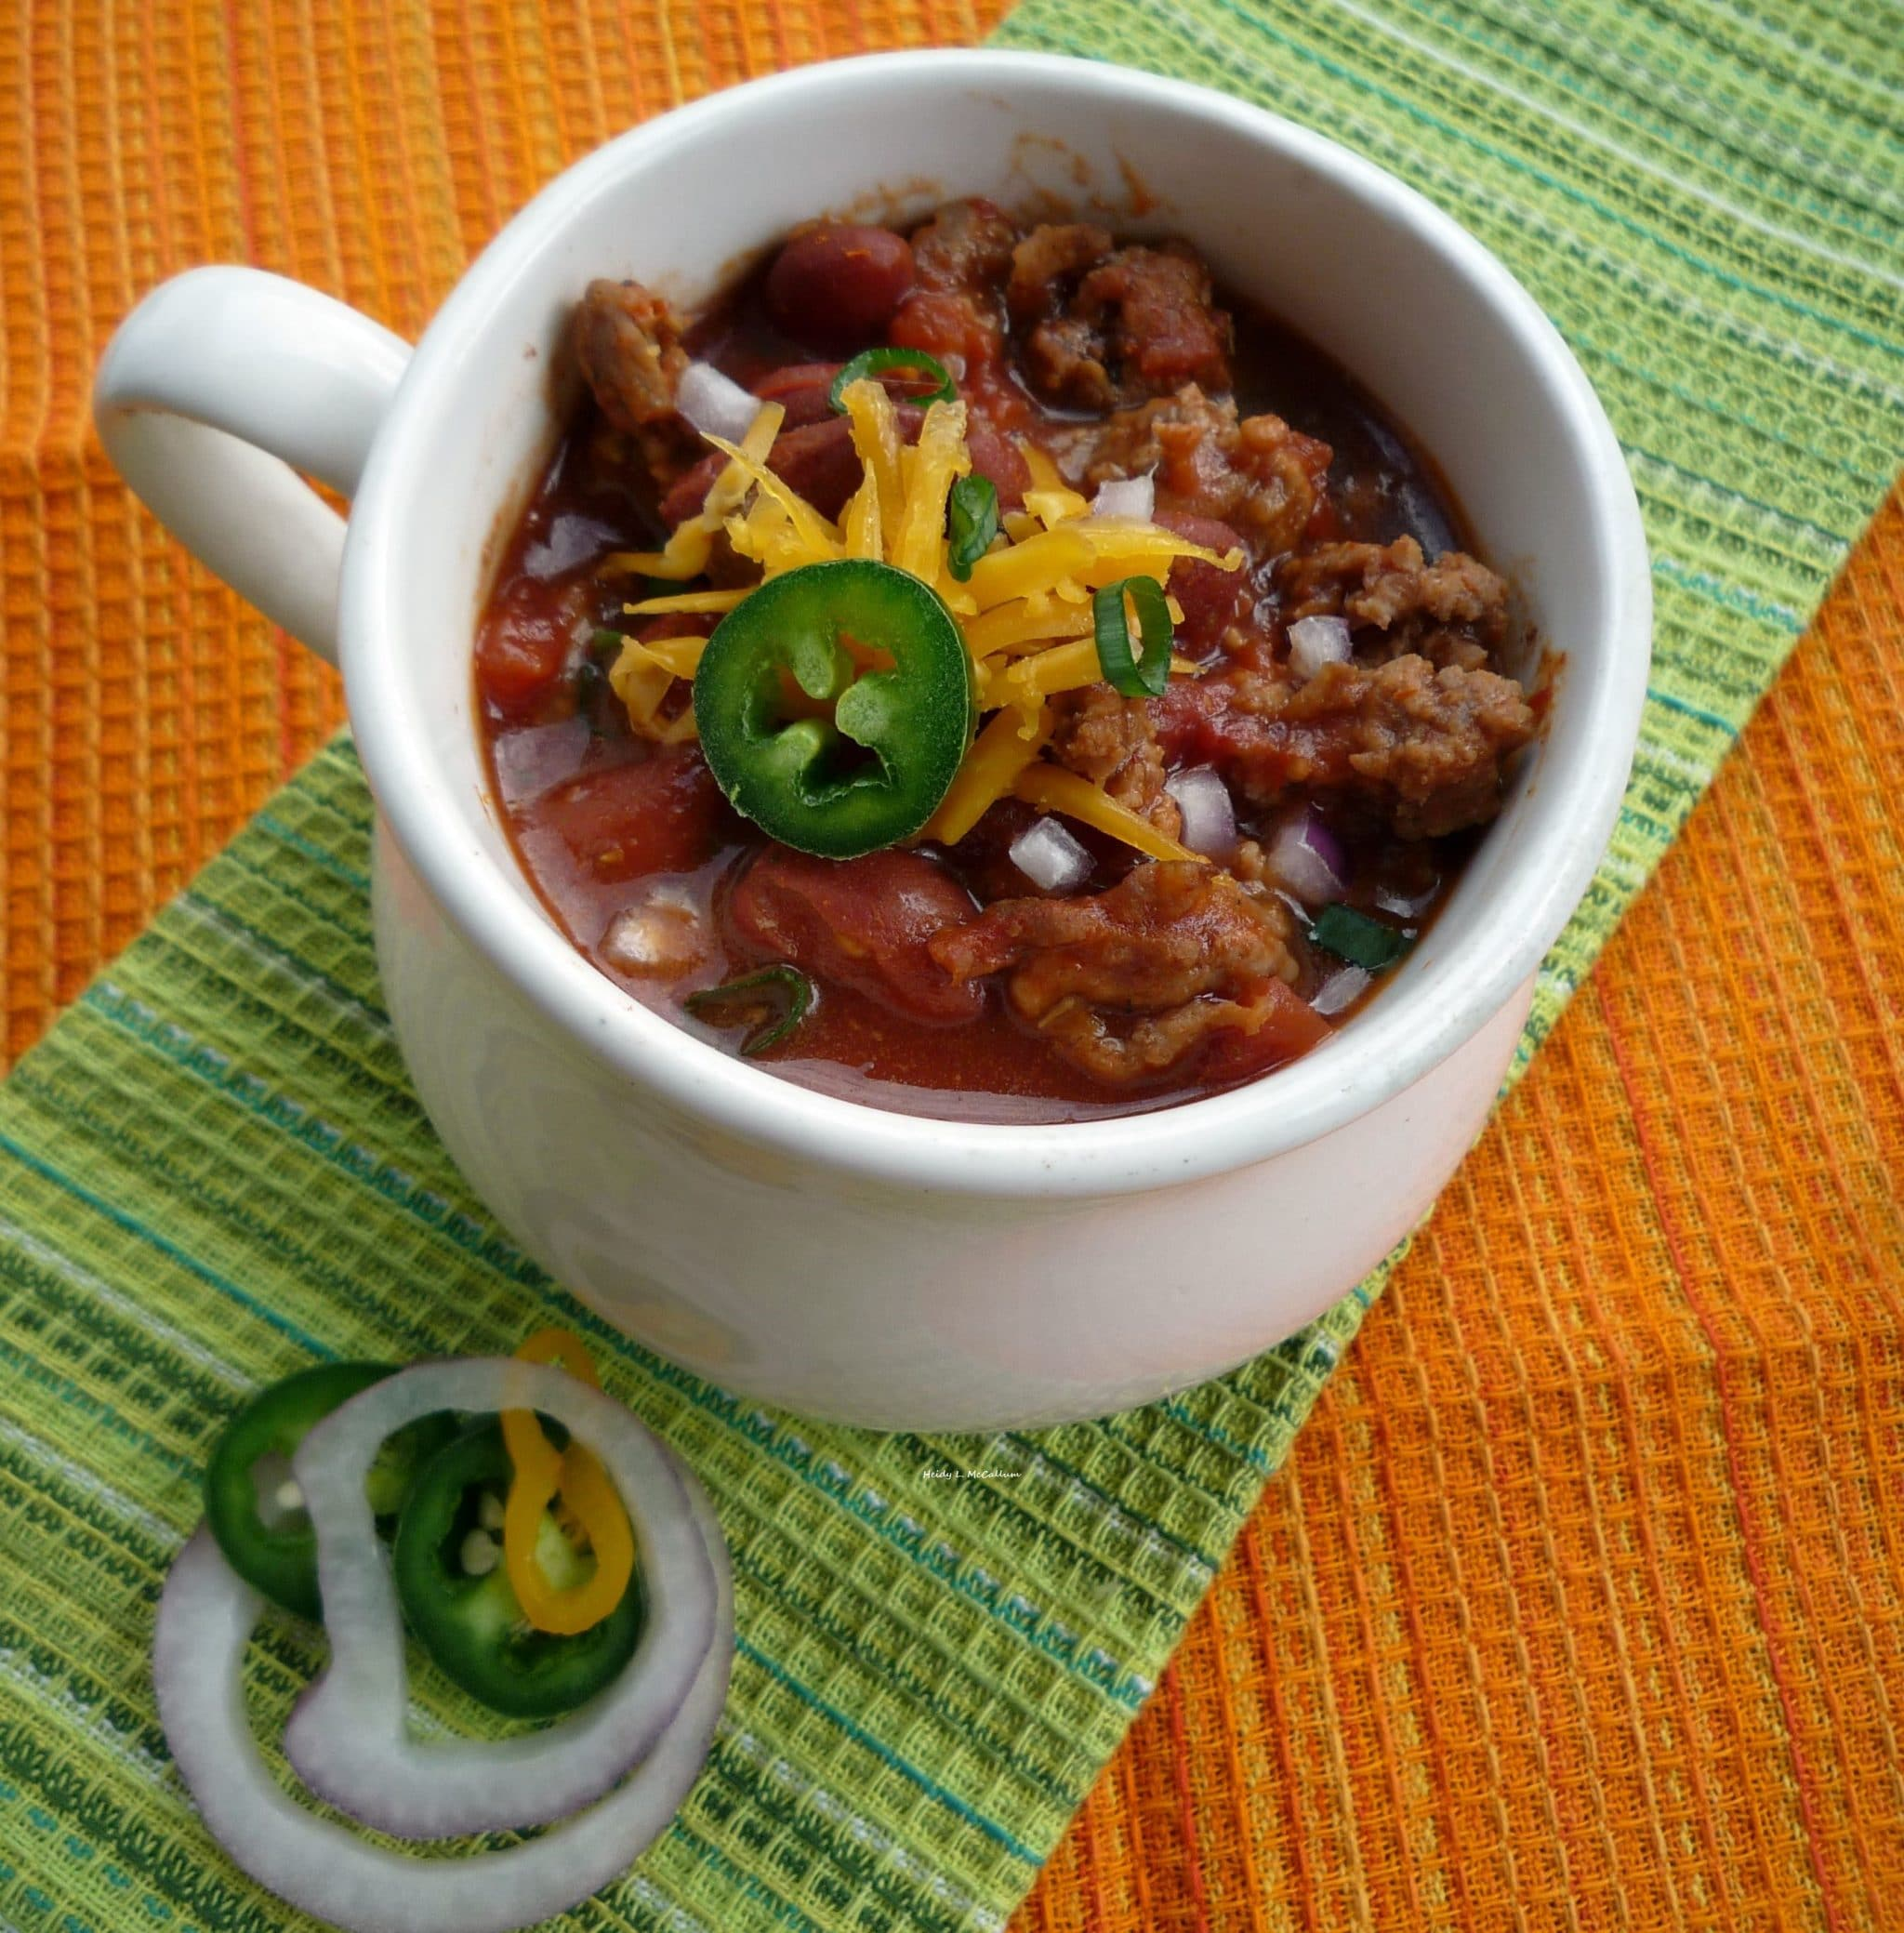 """#Chili Con Carne - In some areas, specifically the American South, versions with beans are referred to as """"chili beans"""" while the term """"chili"""" is reserved for the all-meat dish. Small red beans are commonly used for chili, as are black-eyed peas, kidney beans, great northern beans, or navy beans."""